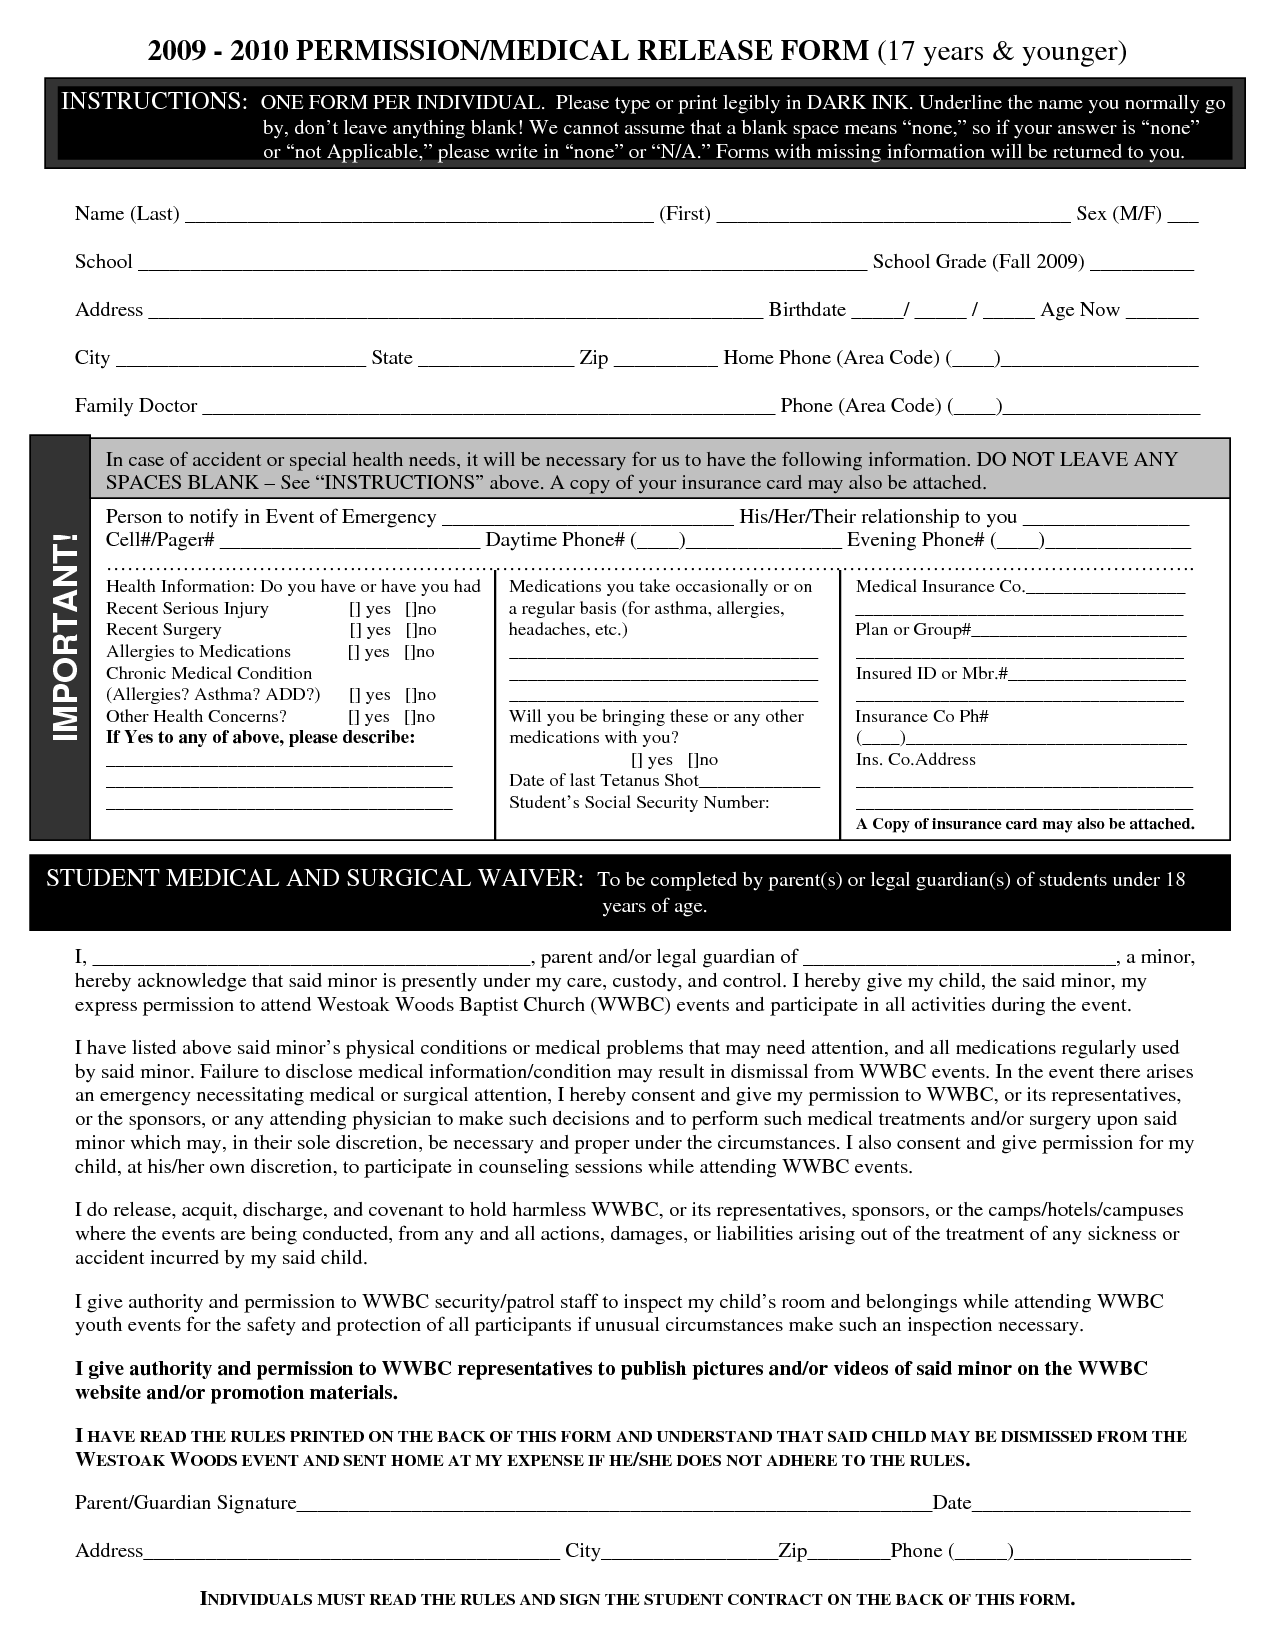 Doctor Hospital Release Form Excuse From Work Pdf – Work Release Form